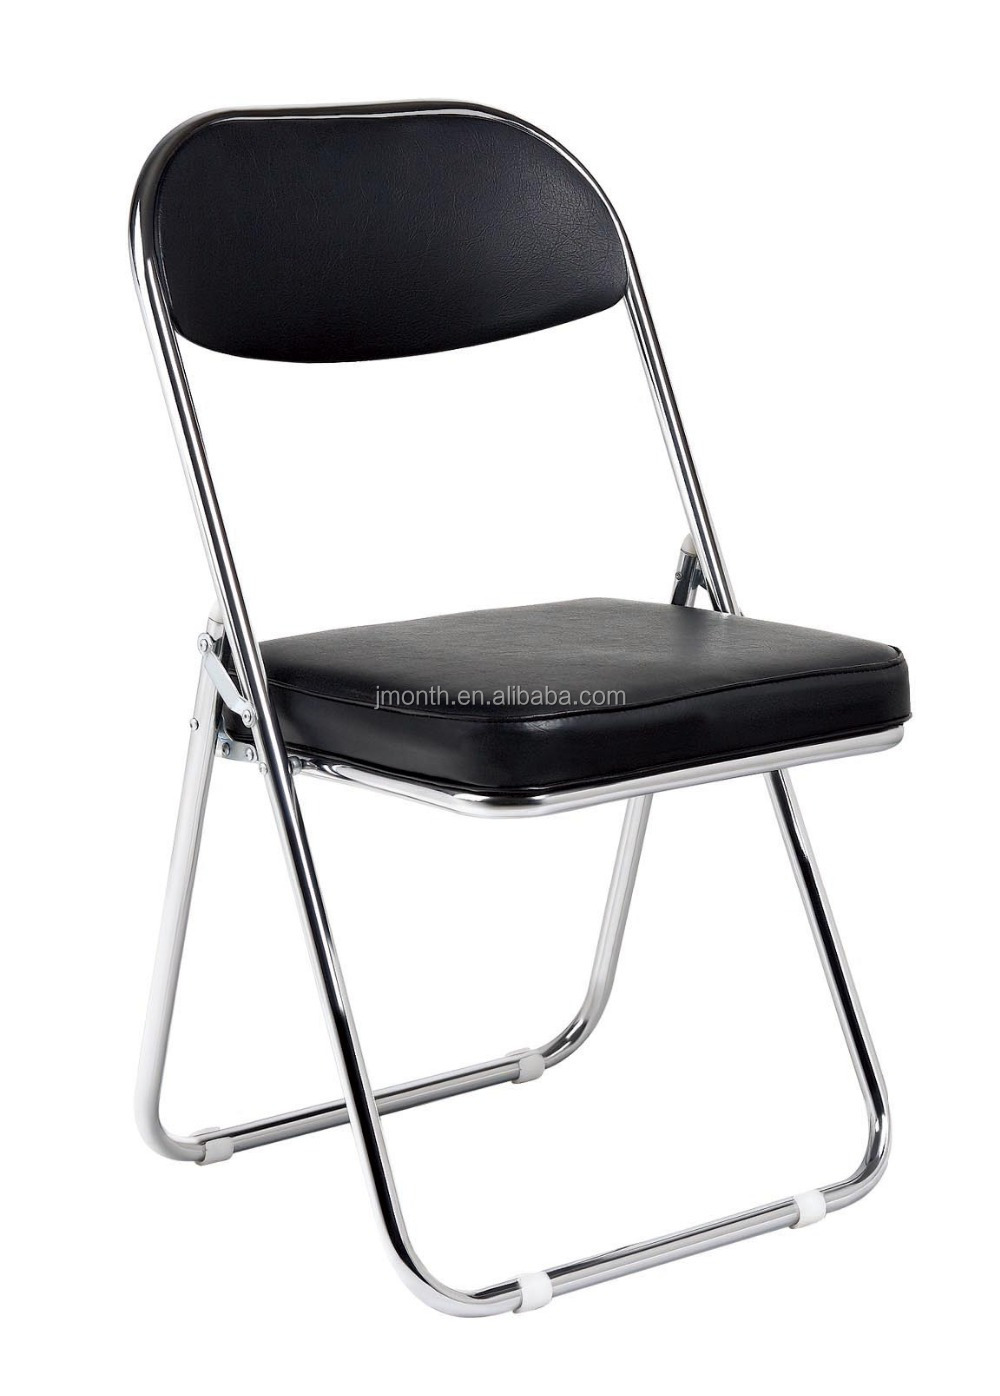 Cheap Used Metal Folding Chairs With Padded Seats Buy Metal Folding Chairs